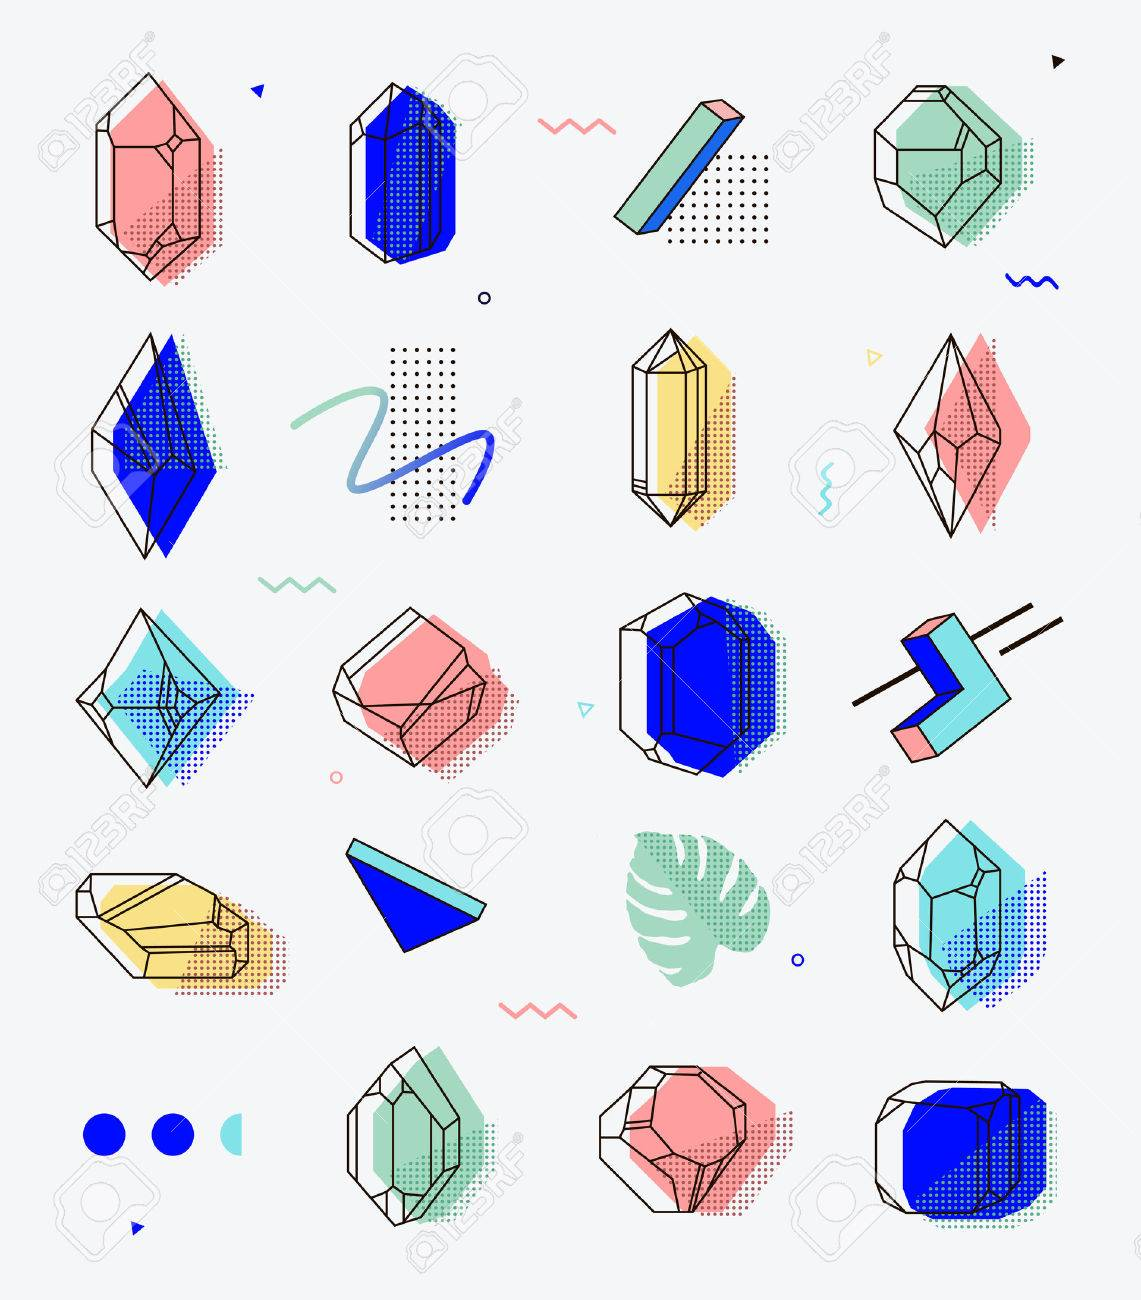 Set of space objects crystals with geometric shapes. Memphis style for hipsters. The elements for cover, fashion, t-shirts, gift cards, 80. Standard-Bild - 55511453